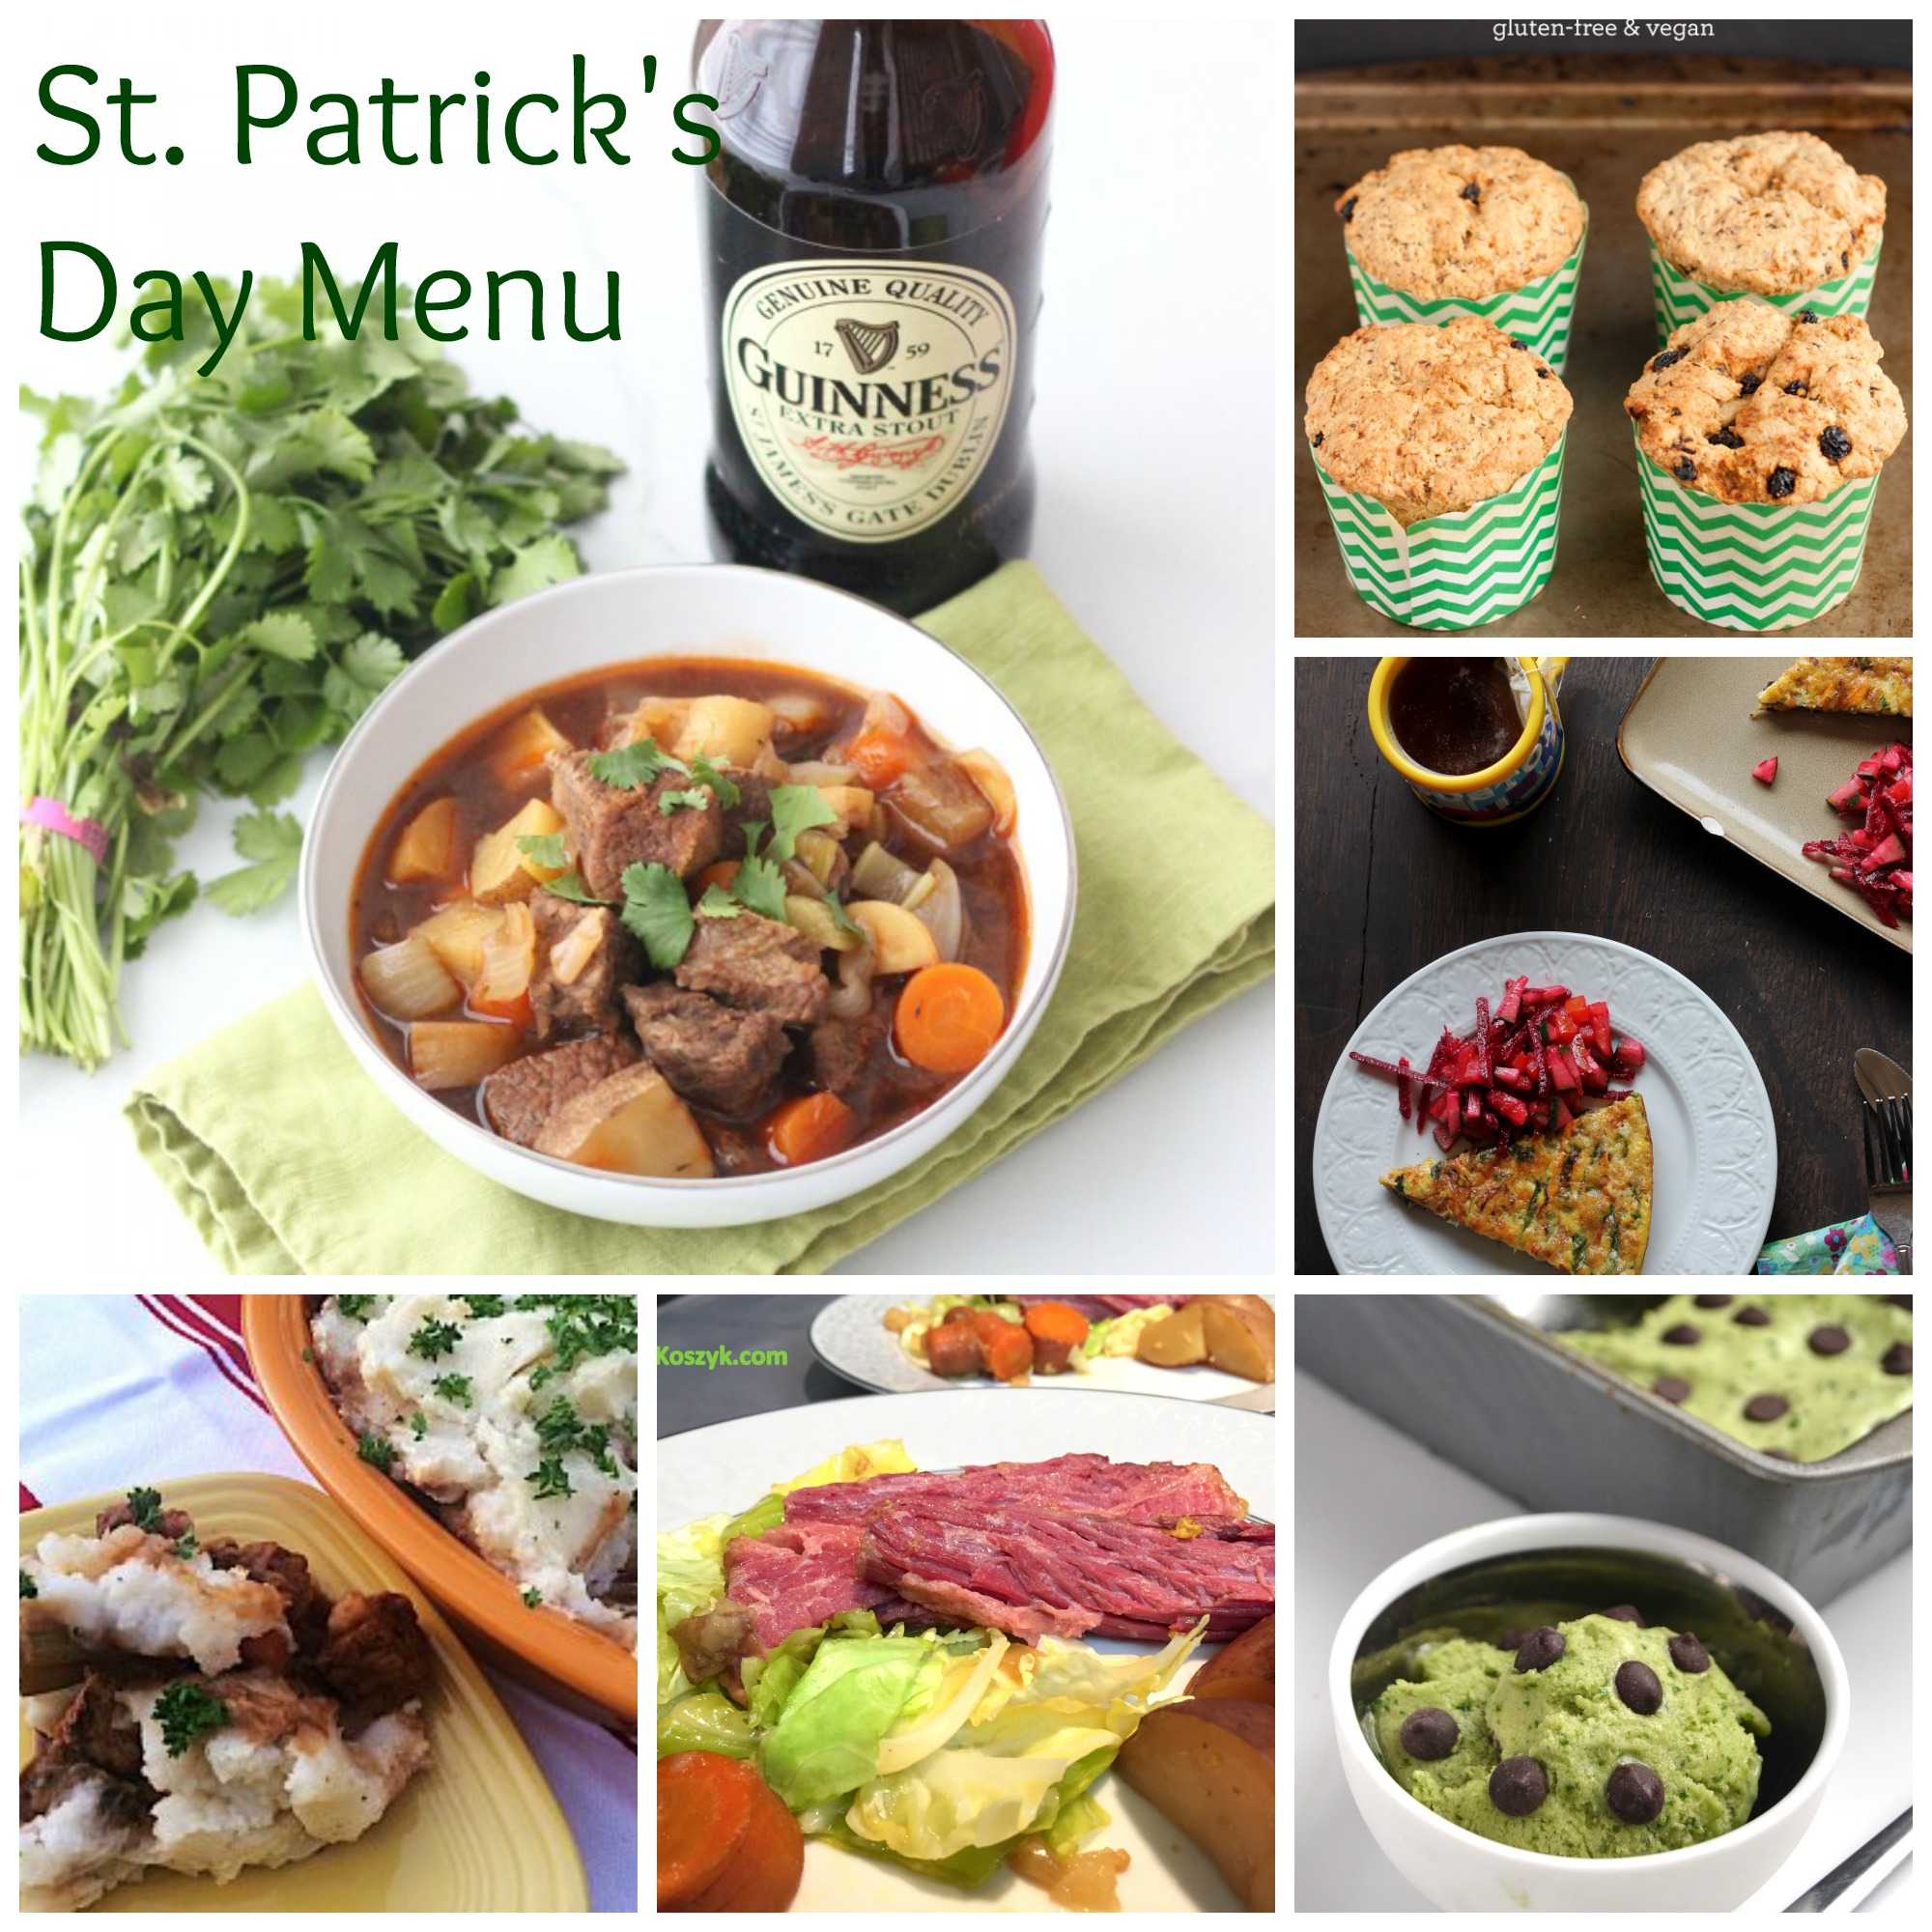 St. Patrick's Day Healthy Recipe Round-Up From Dietitians